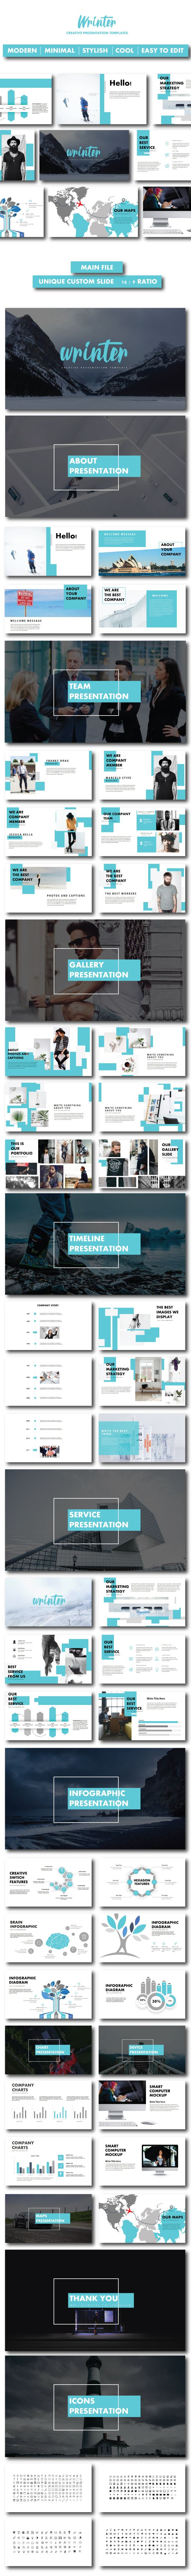 100 google intranet templates google site templates youtube google intranet templates 25 trending powerpoint slide templates ideas on pinterest ppt toneelgroepblik Choice Image